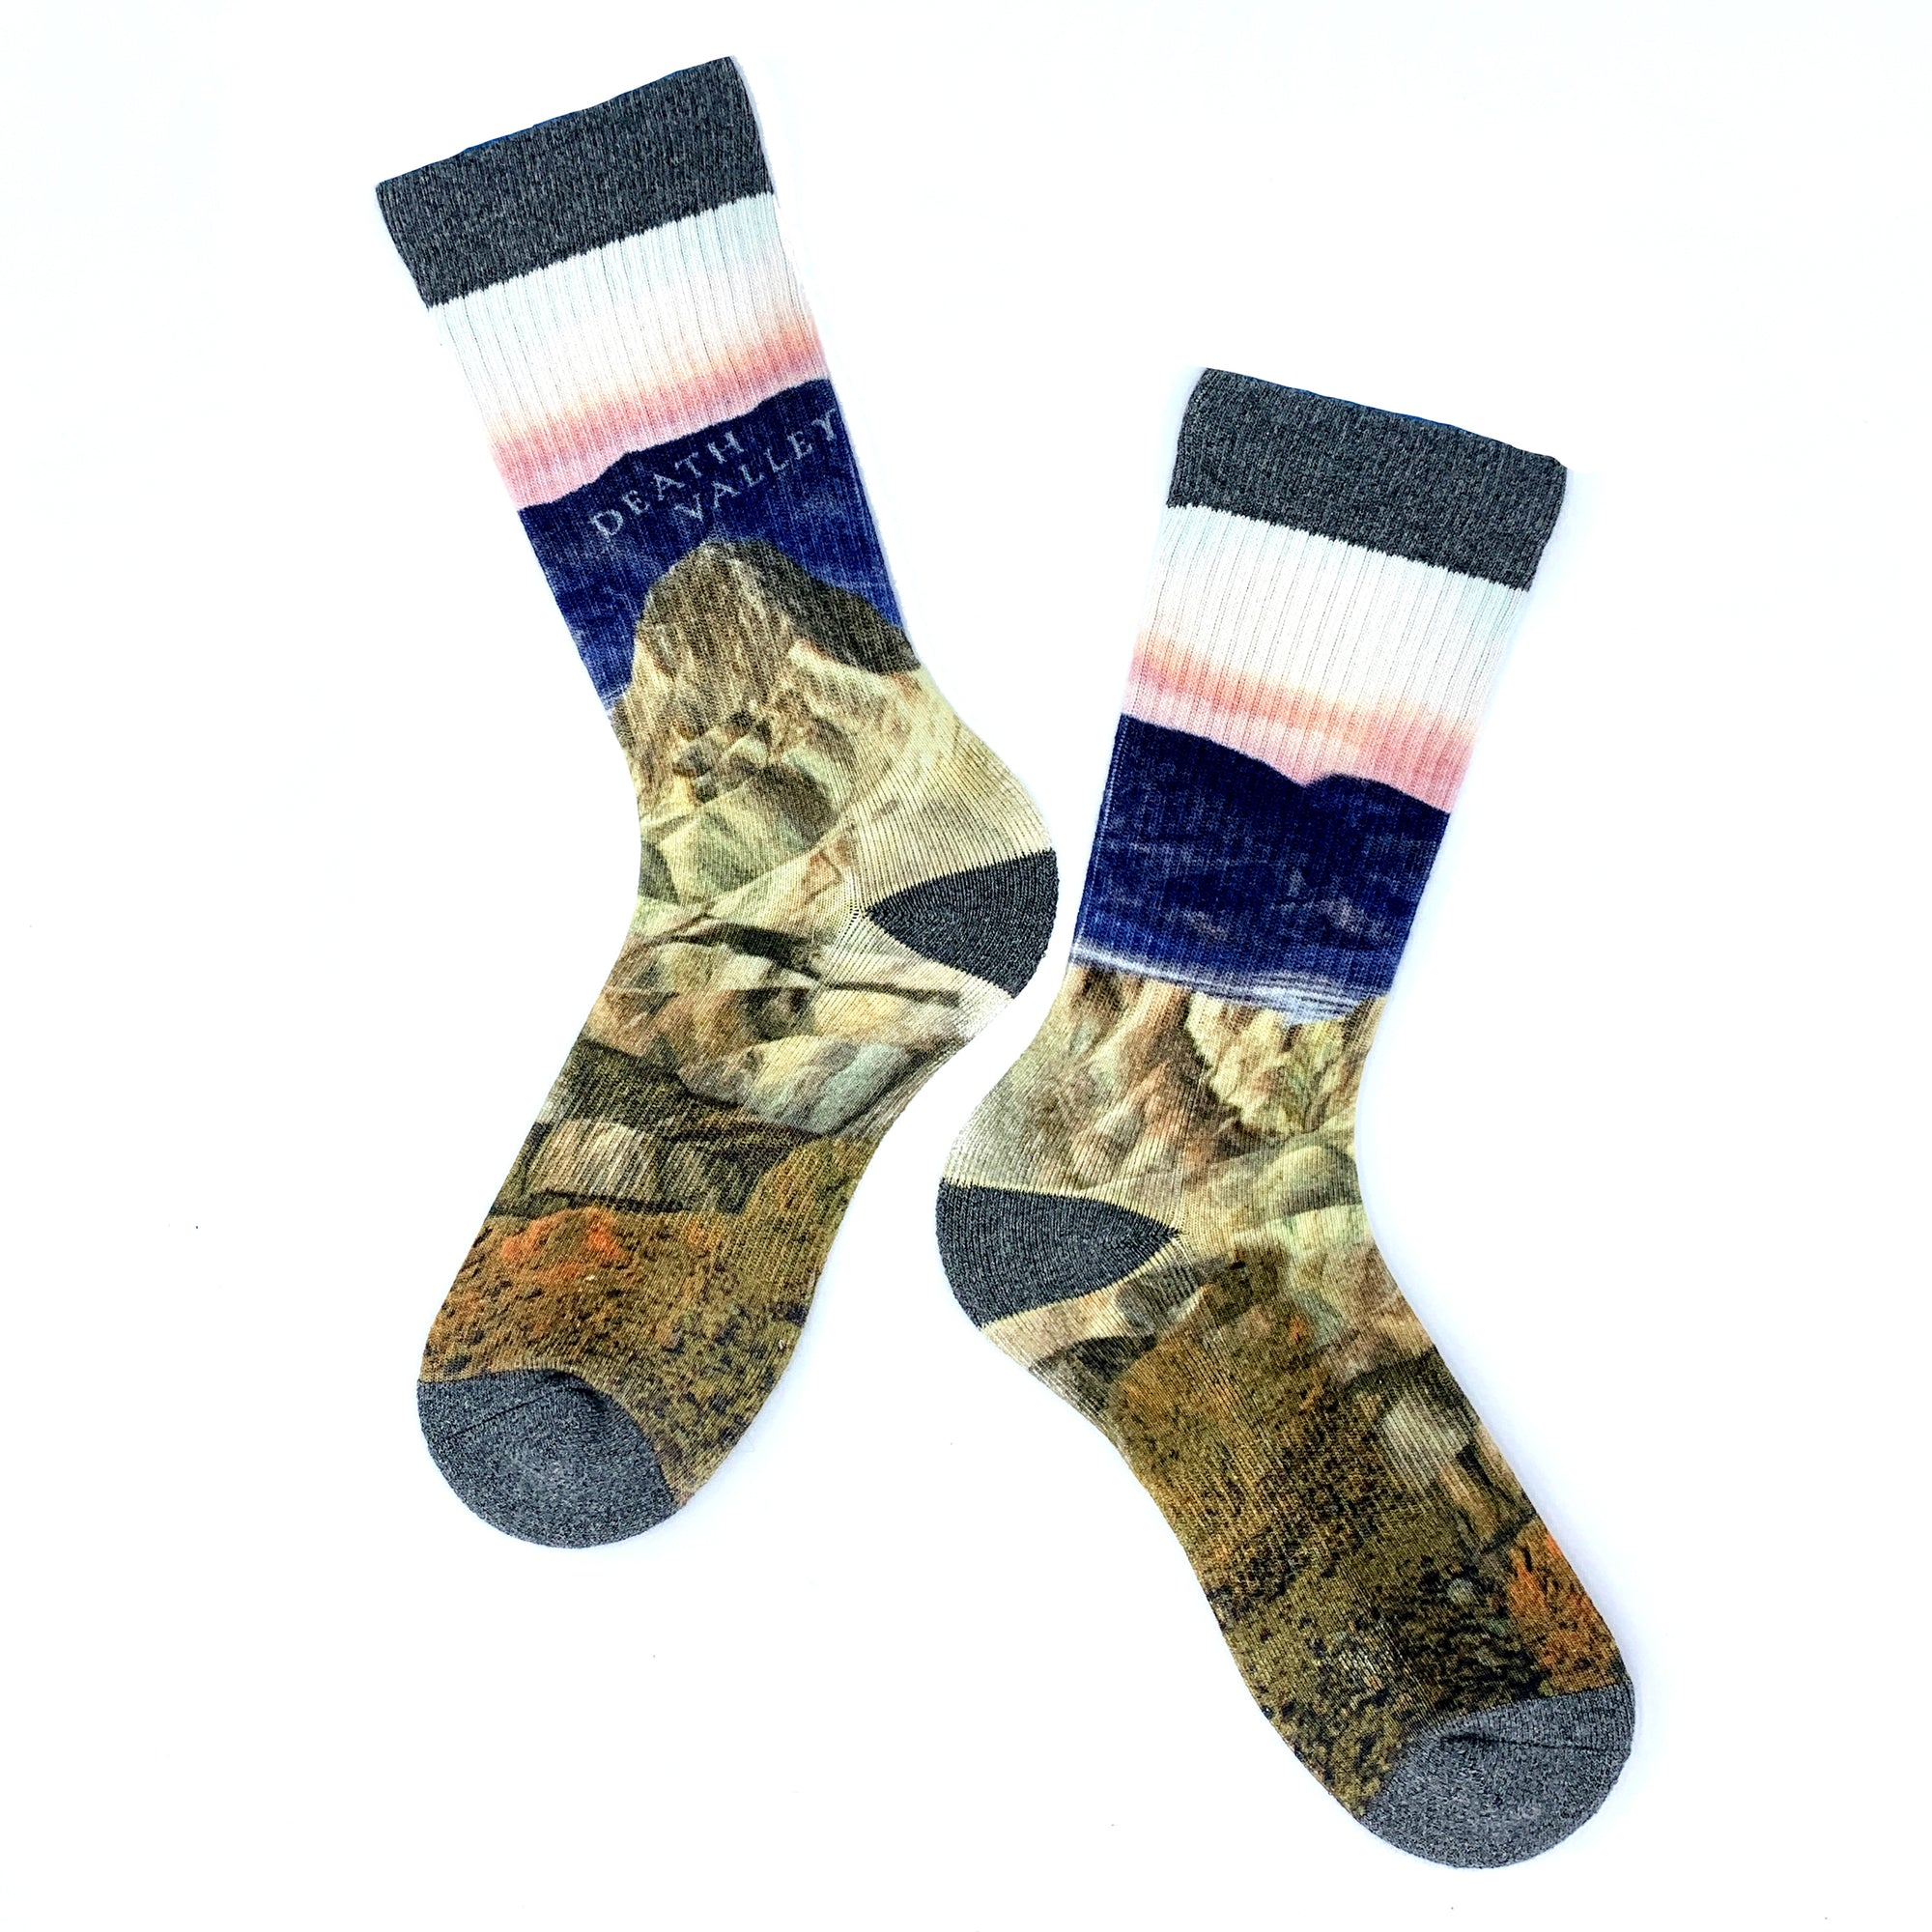 Socks from McGovern & Company